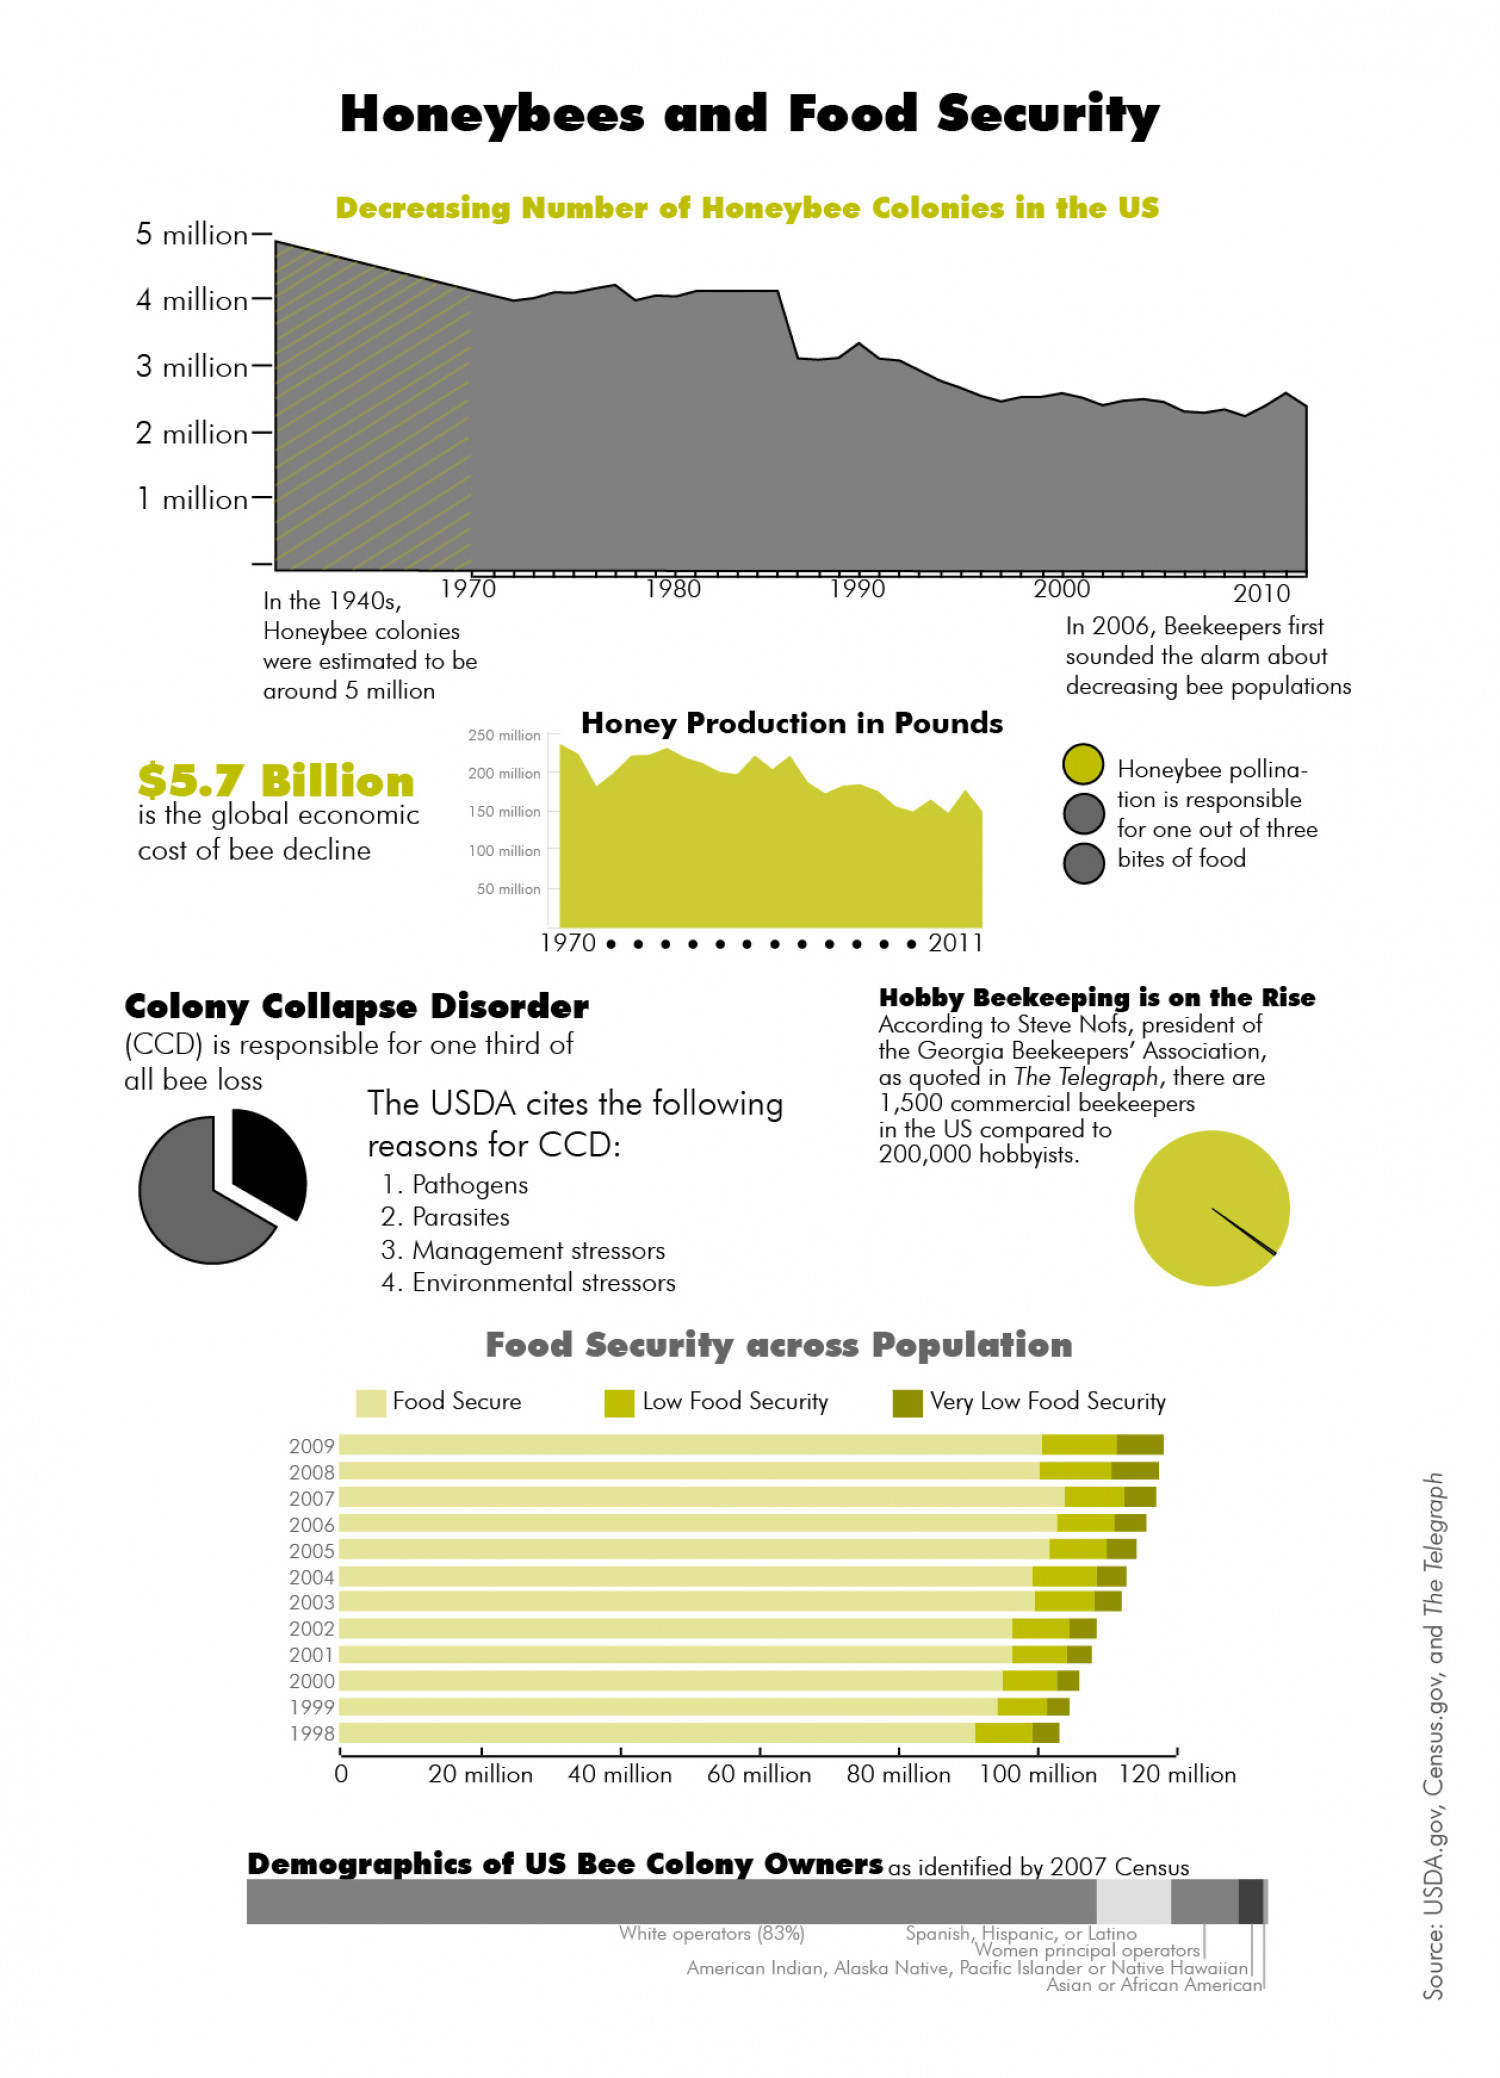 Honeybees and Food Security Infographic